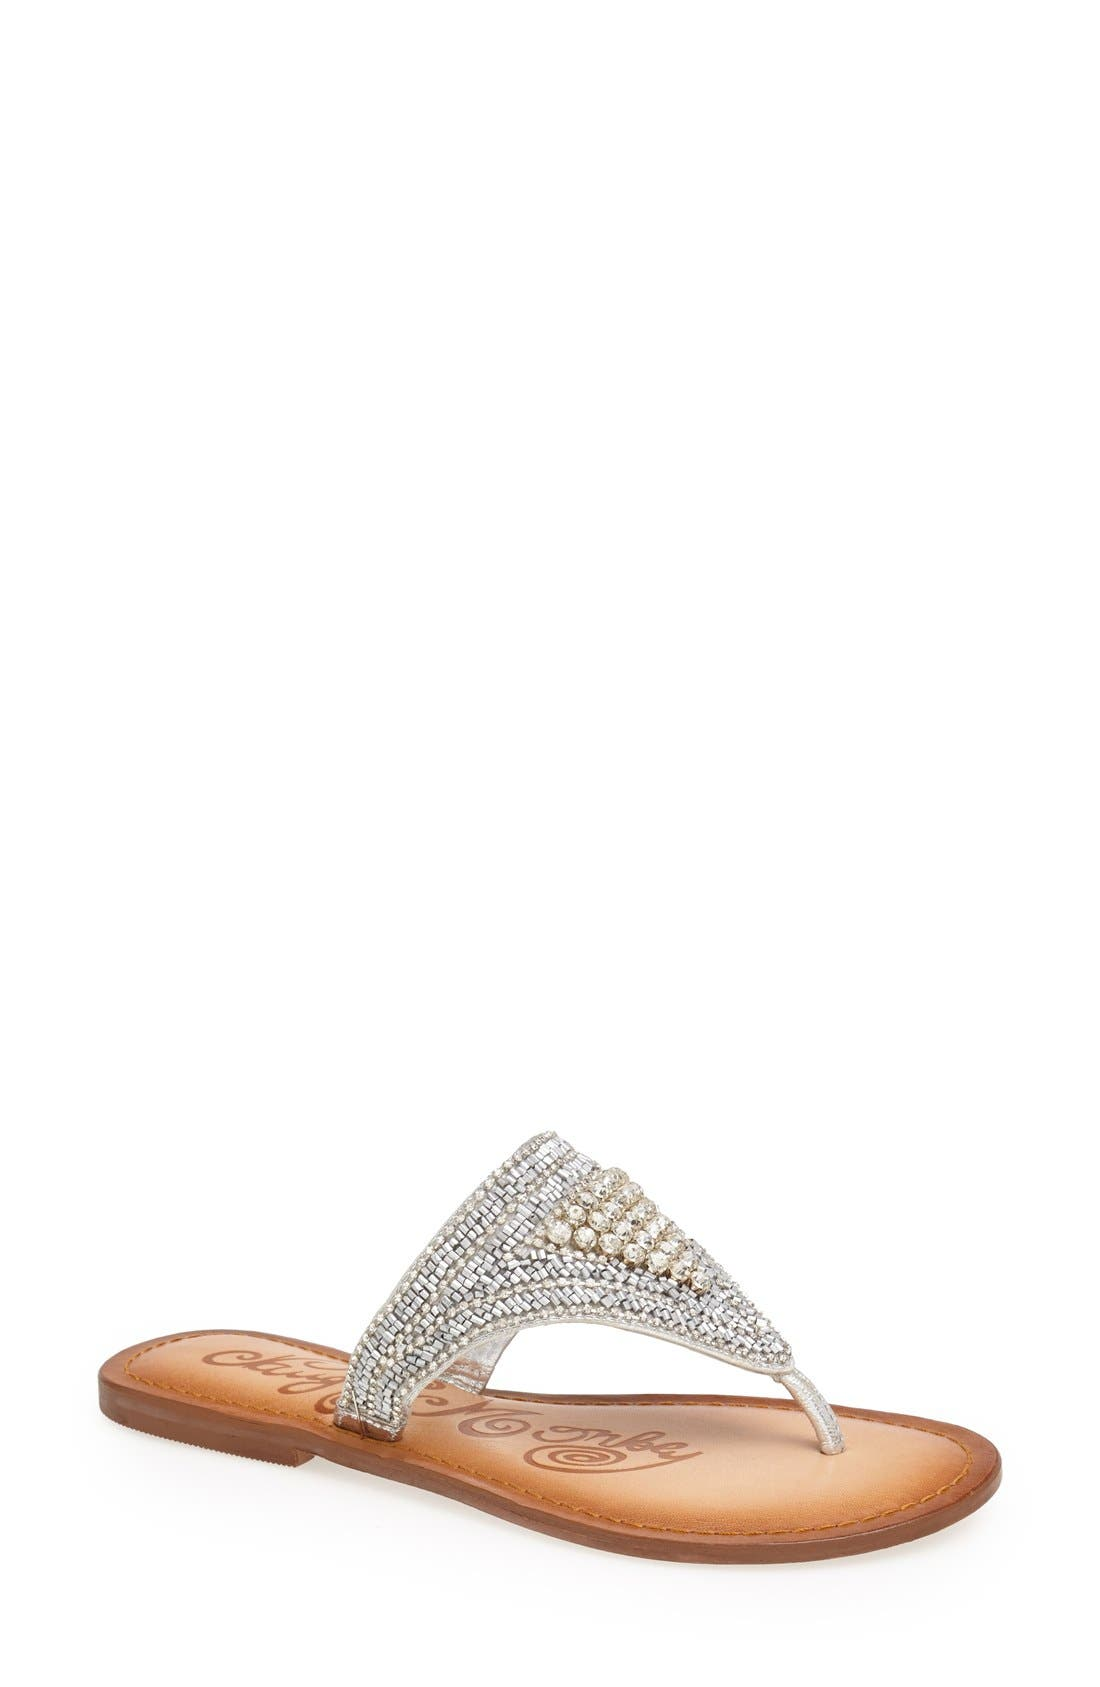 Main Image - Naughty Monkey 'Gusto' Beaded Sandal (Women)